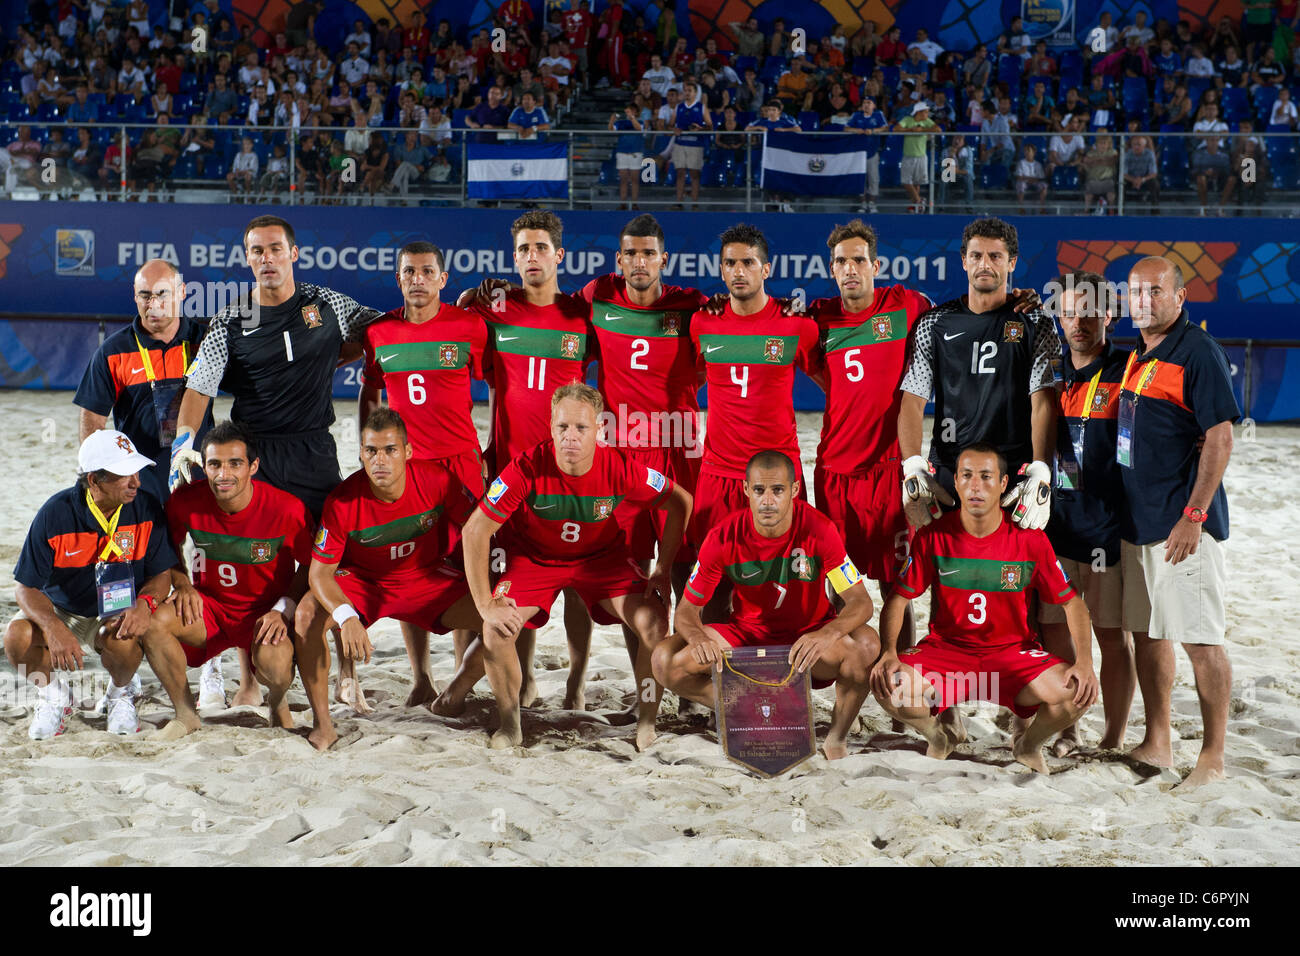 Portugal Team Group Line Up For Fifa Beach Soccer World Cup Ravenna Italy  Group B Match El Salvador   Portugal